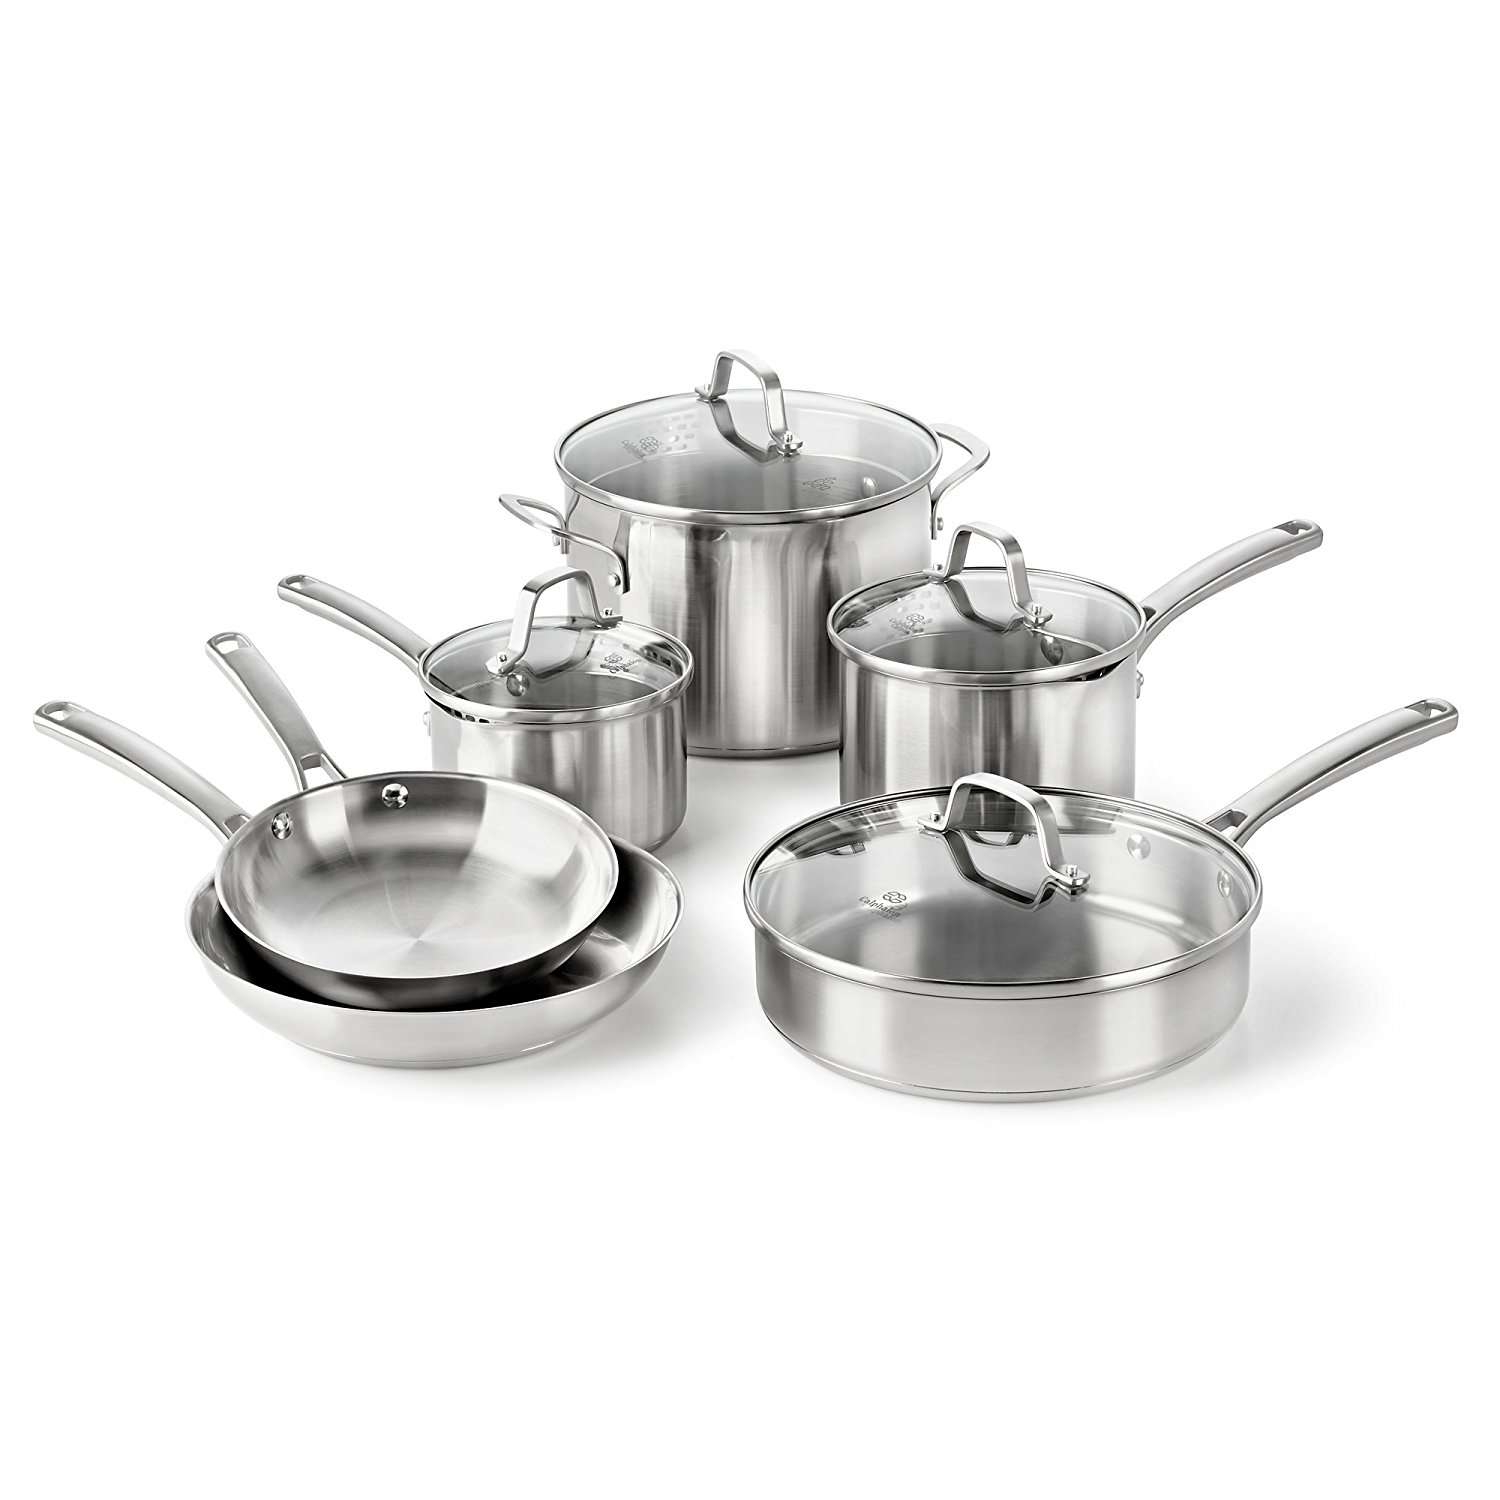 Best Stainless Steel Cookware Set 2019: Reviews and Buying Guide